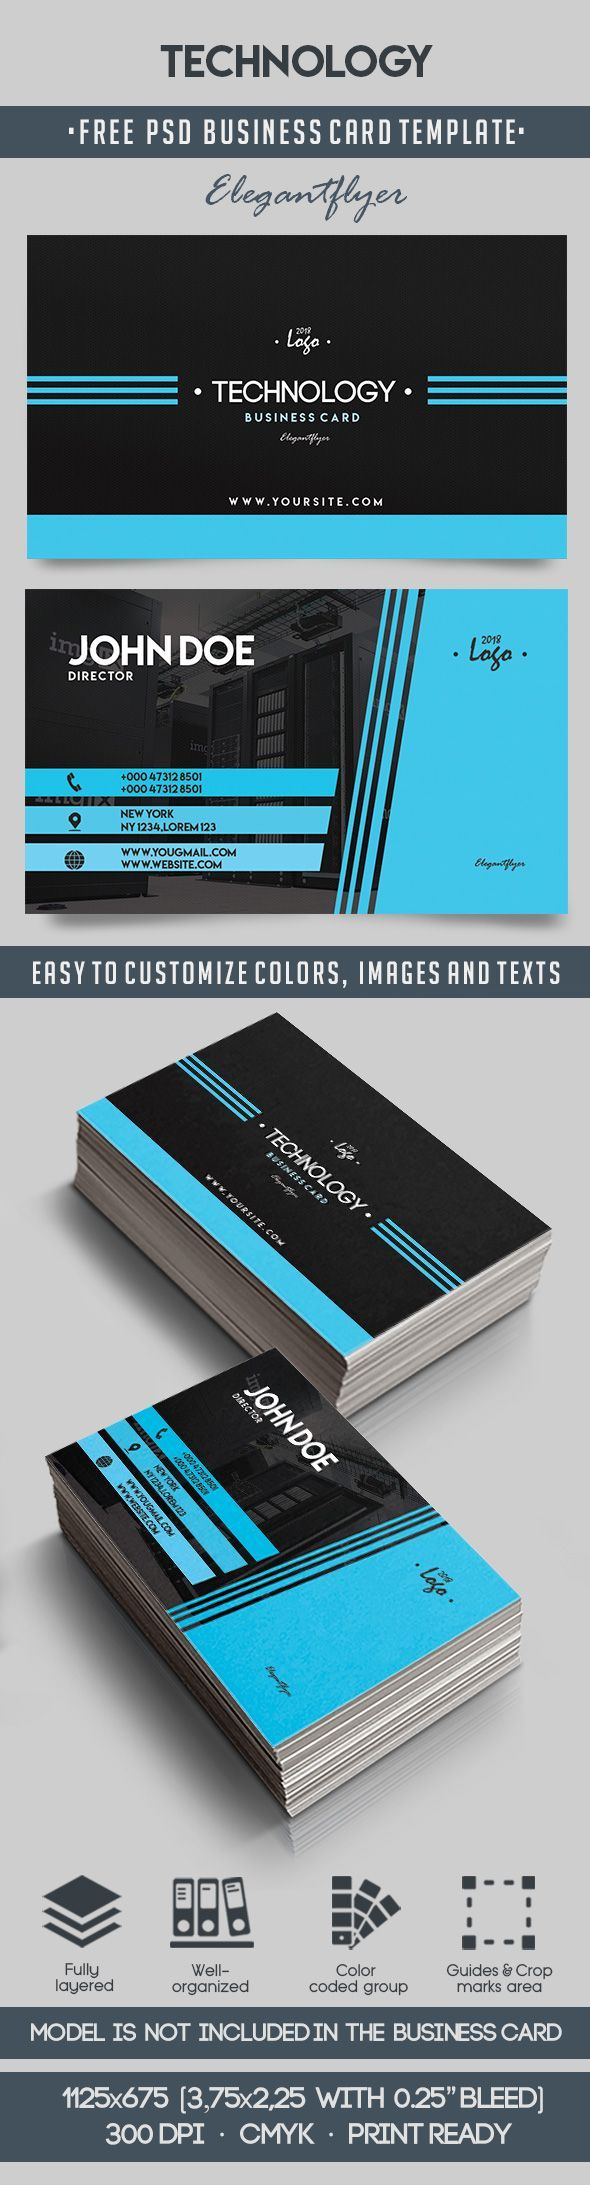 Technology Free Business Card Templates Psd Free Business Card